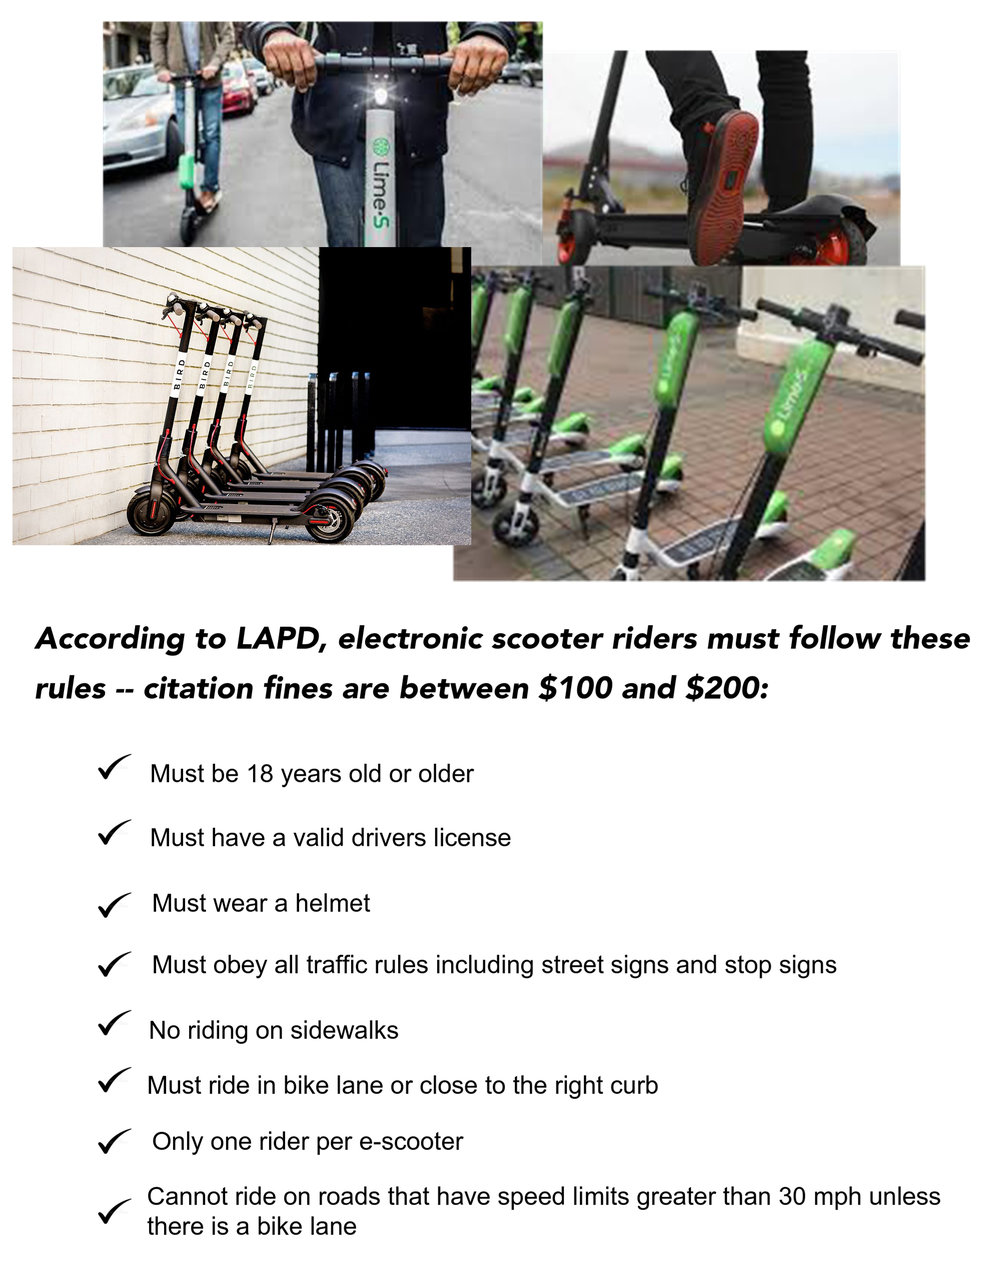 e-scooters rules.jpg